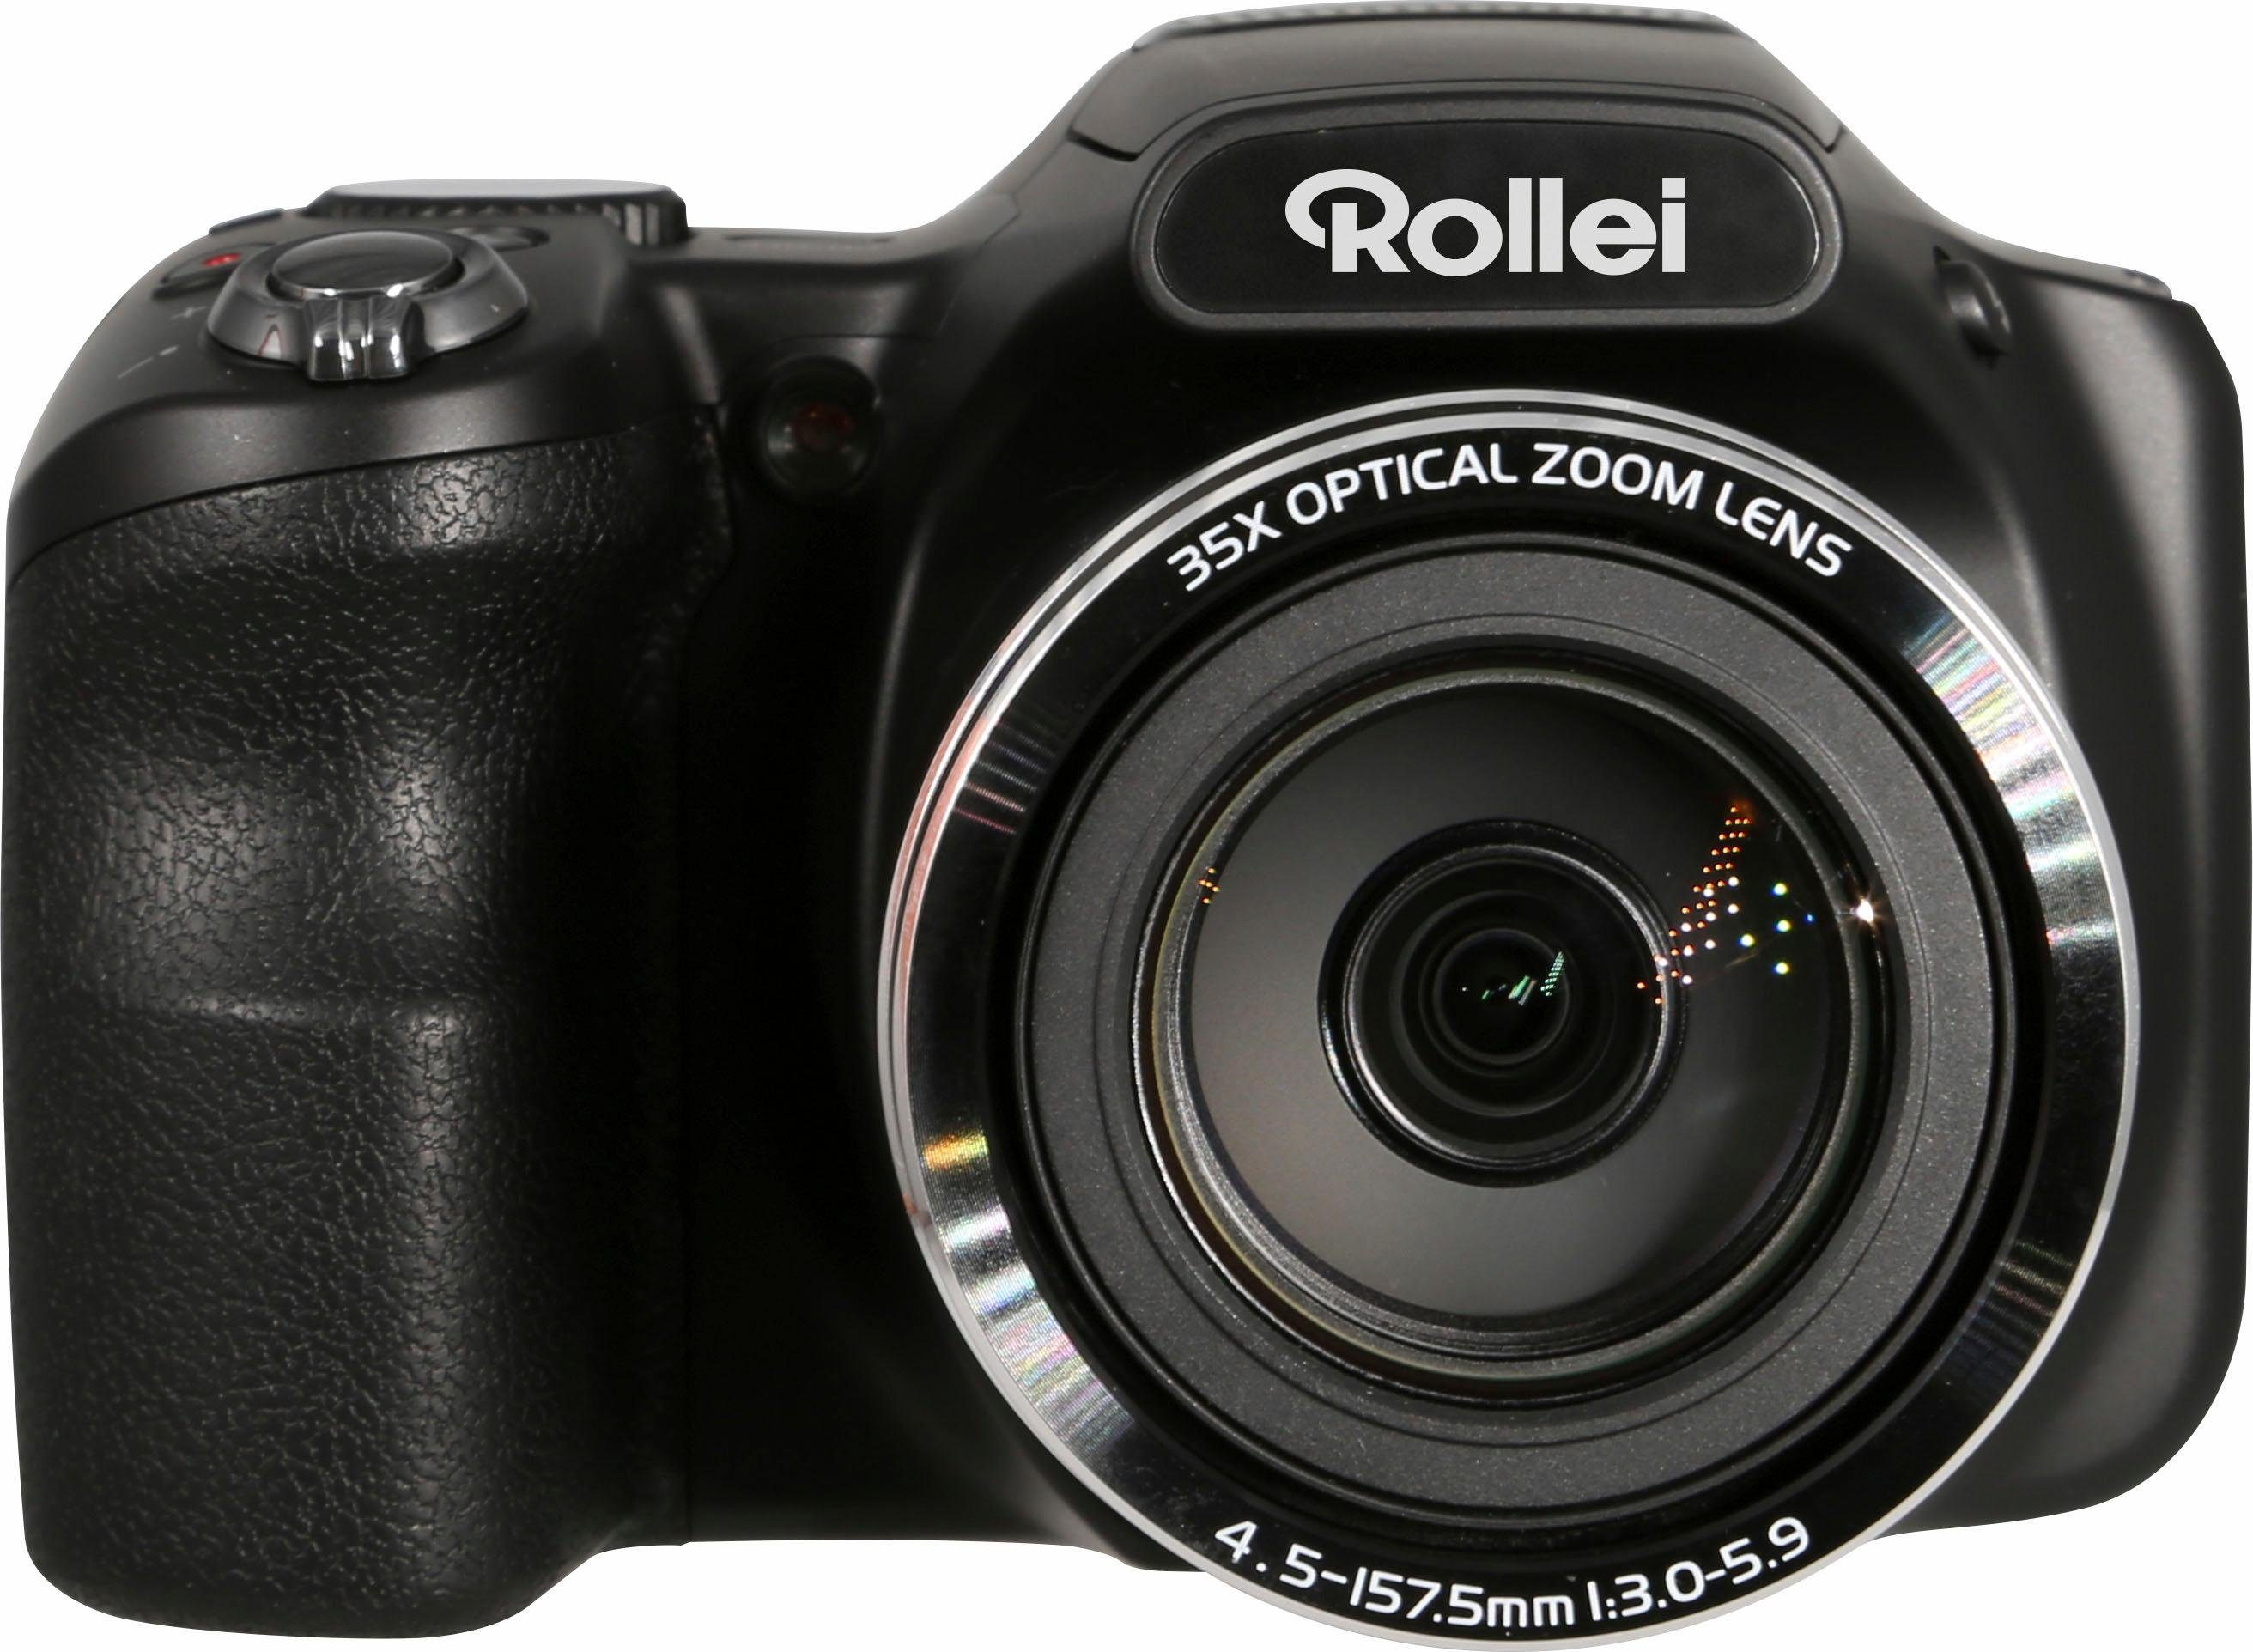 Rollei Powerflex 350 WiFi Super Zoom Kamera, 16 Megapixel, 35x opt. Zoom, 7,6 cm (3 Zoll) Display